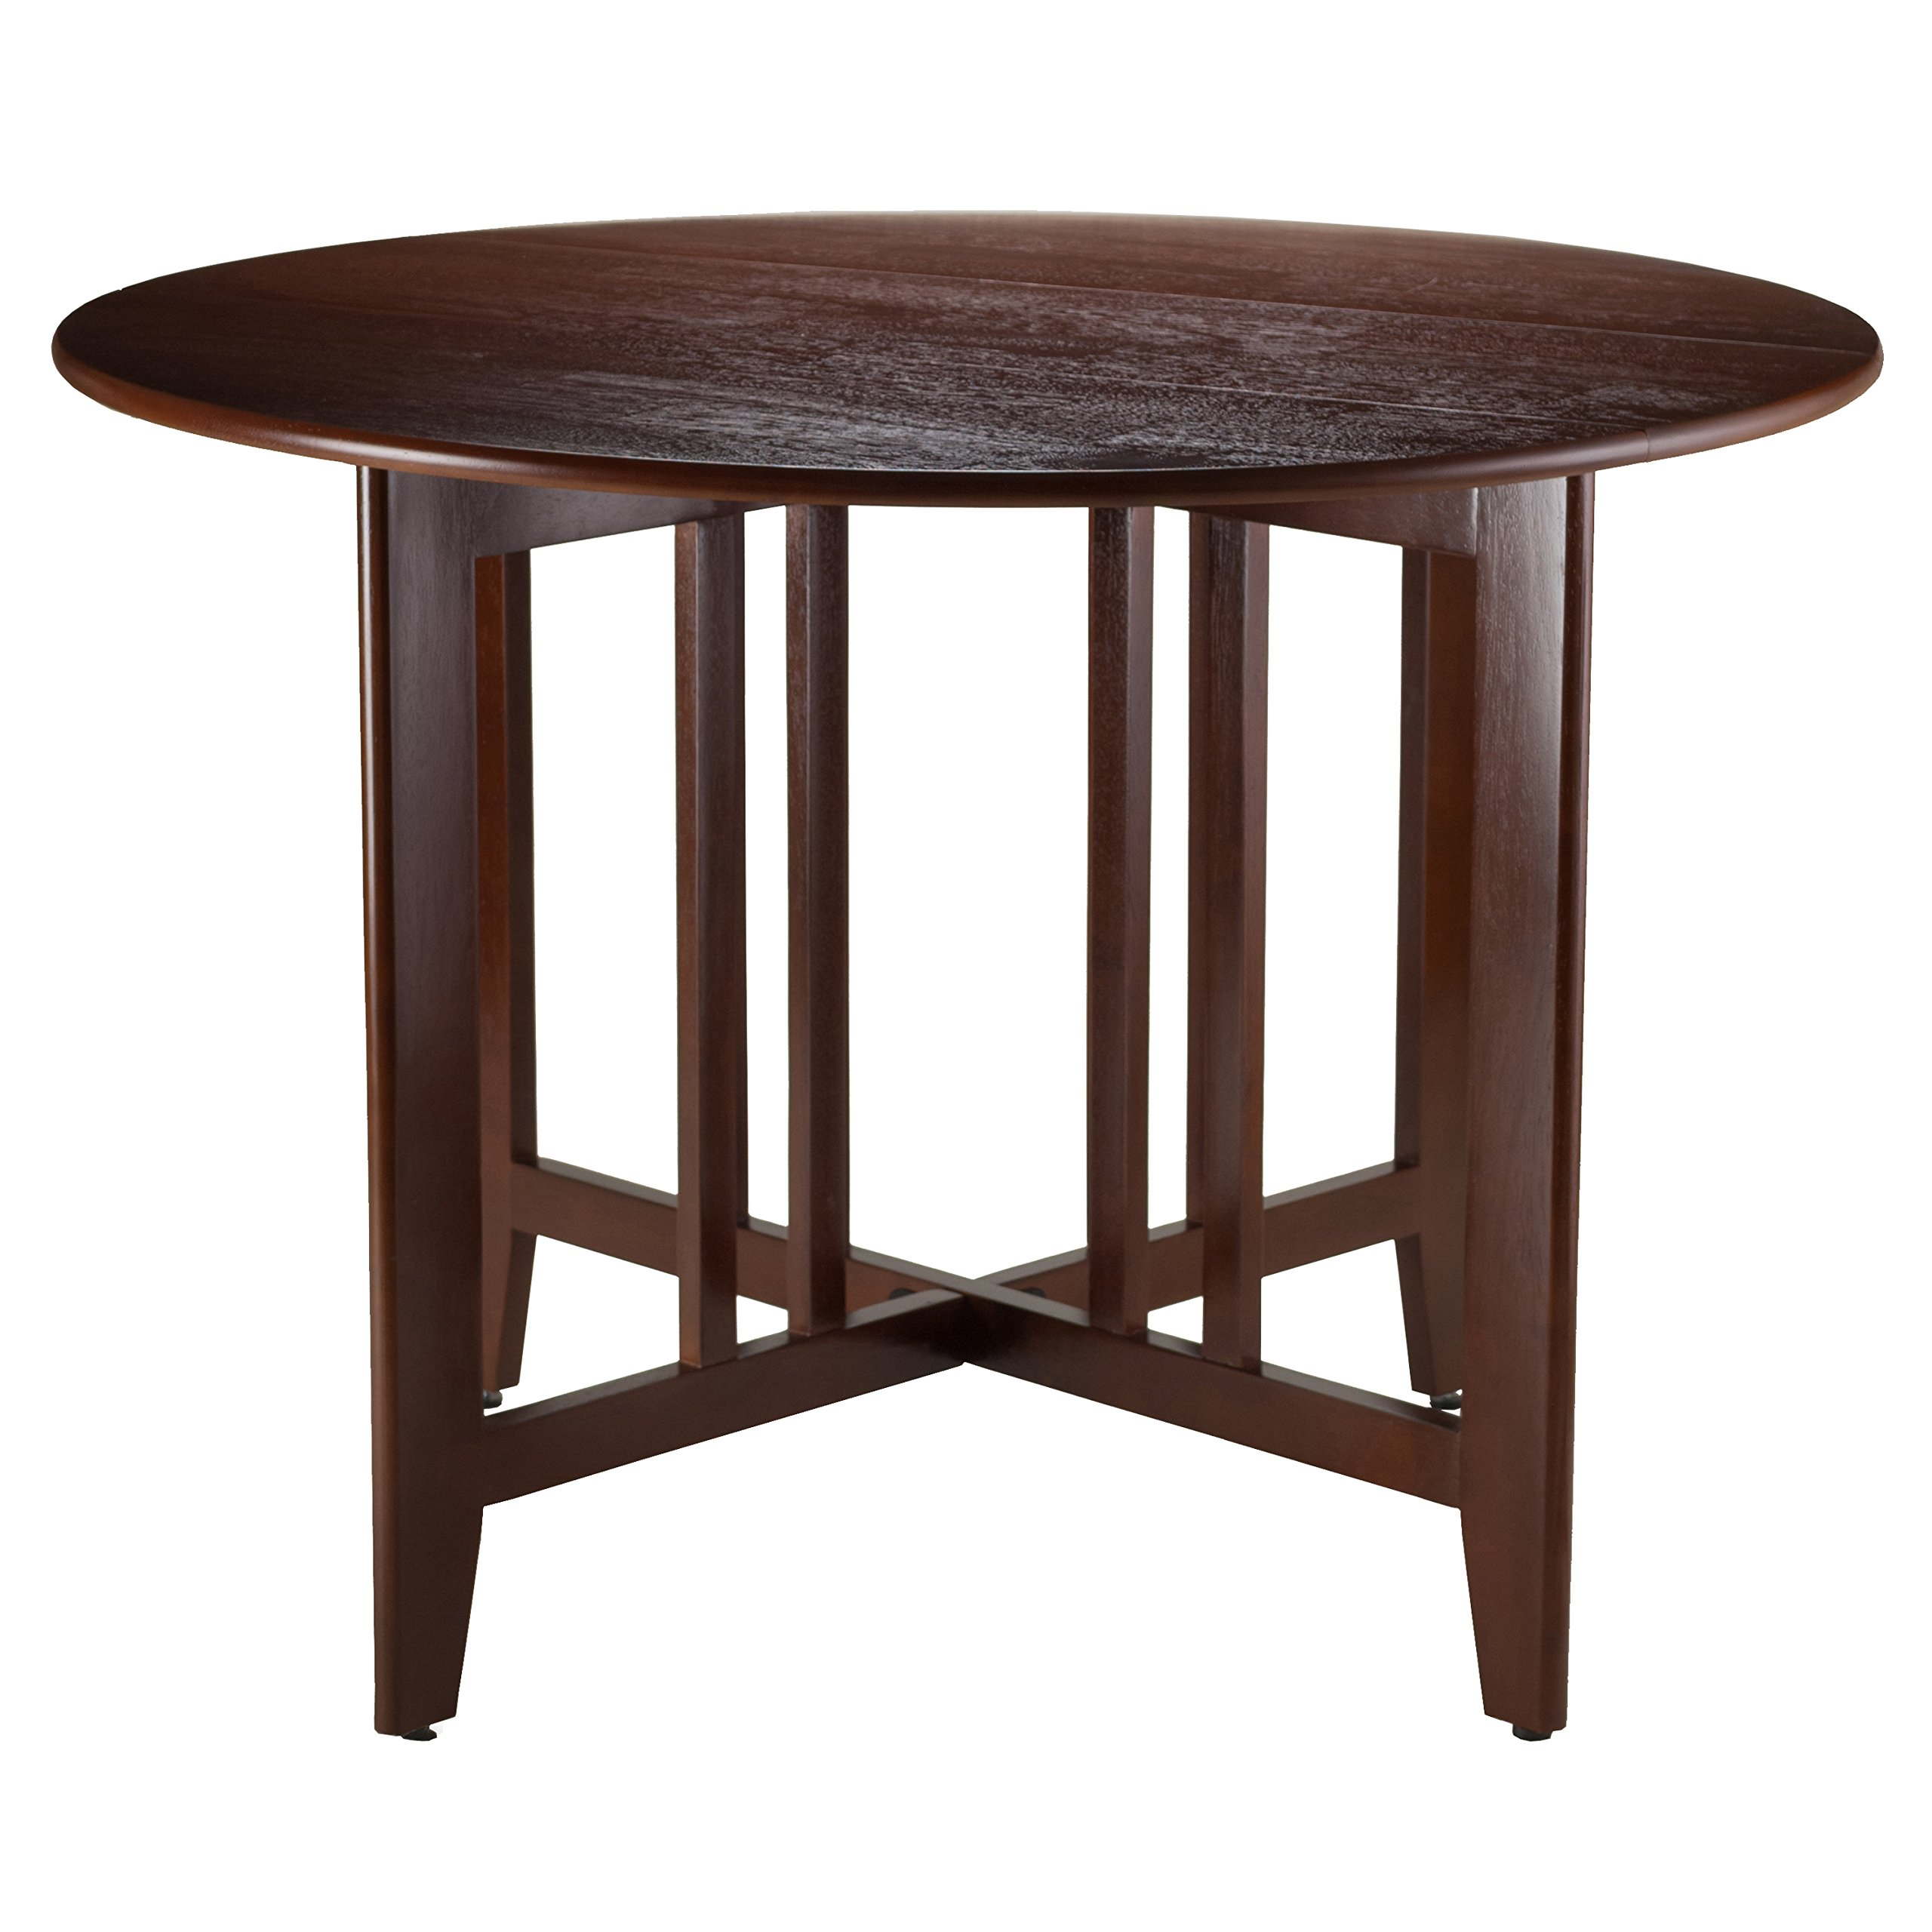 "Solid Wood Kitchen Tables: Drop Leaf Dining Table Walnut Round Solid Wood 42"" Antique"